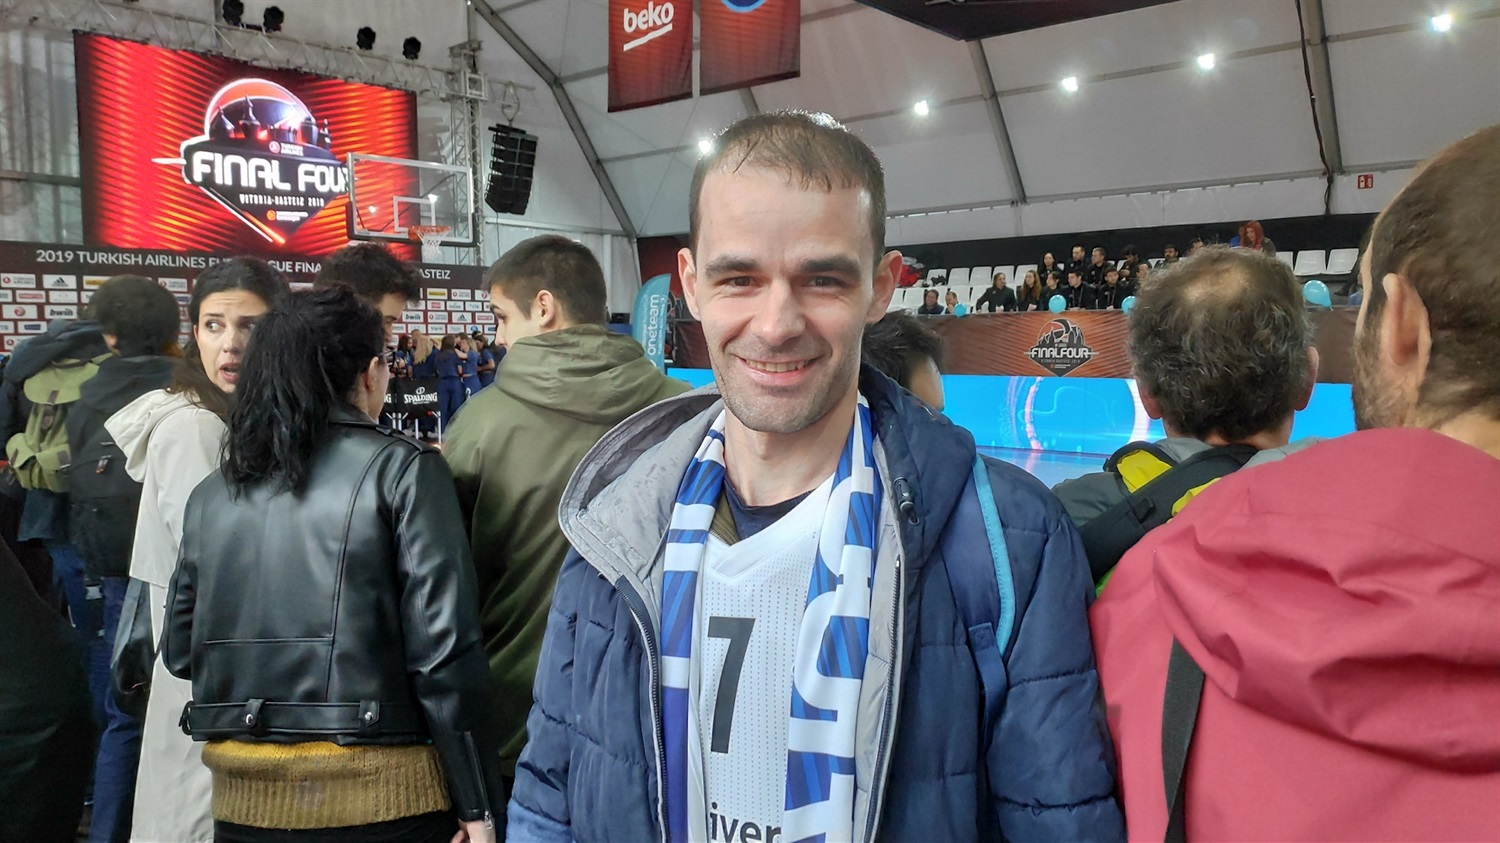 Real Madrid fan at FanZone - Final Four Vitoria-Gasteiz 2019 - EB18